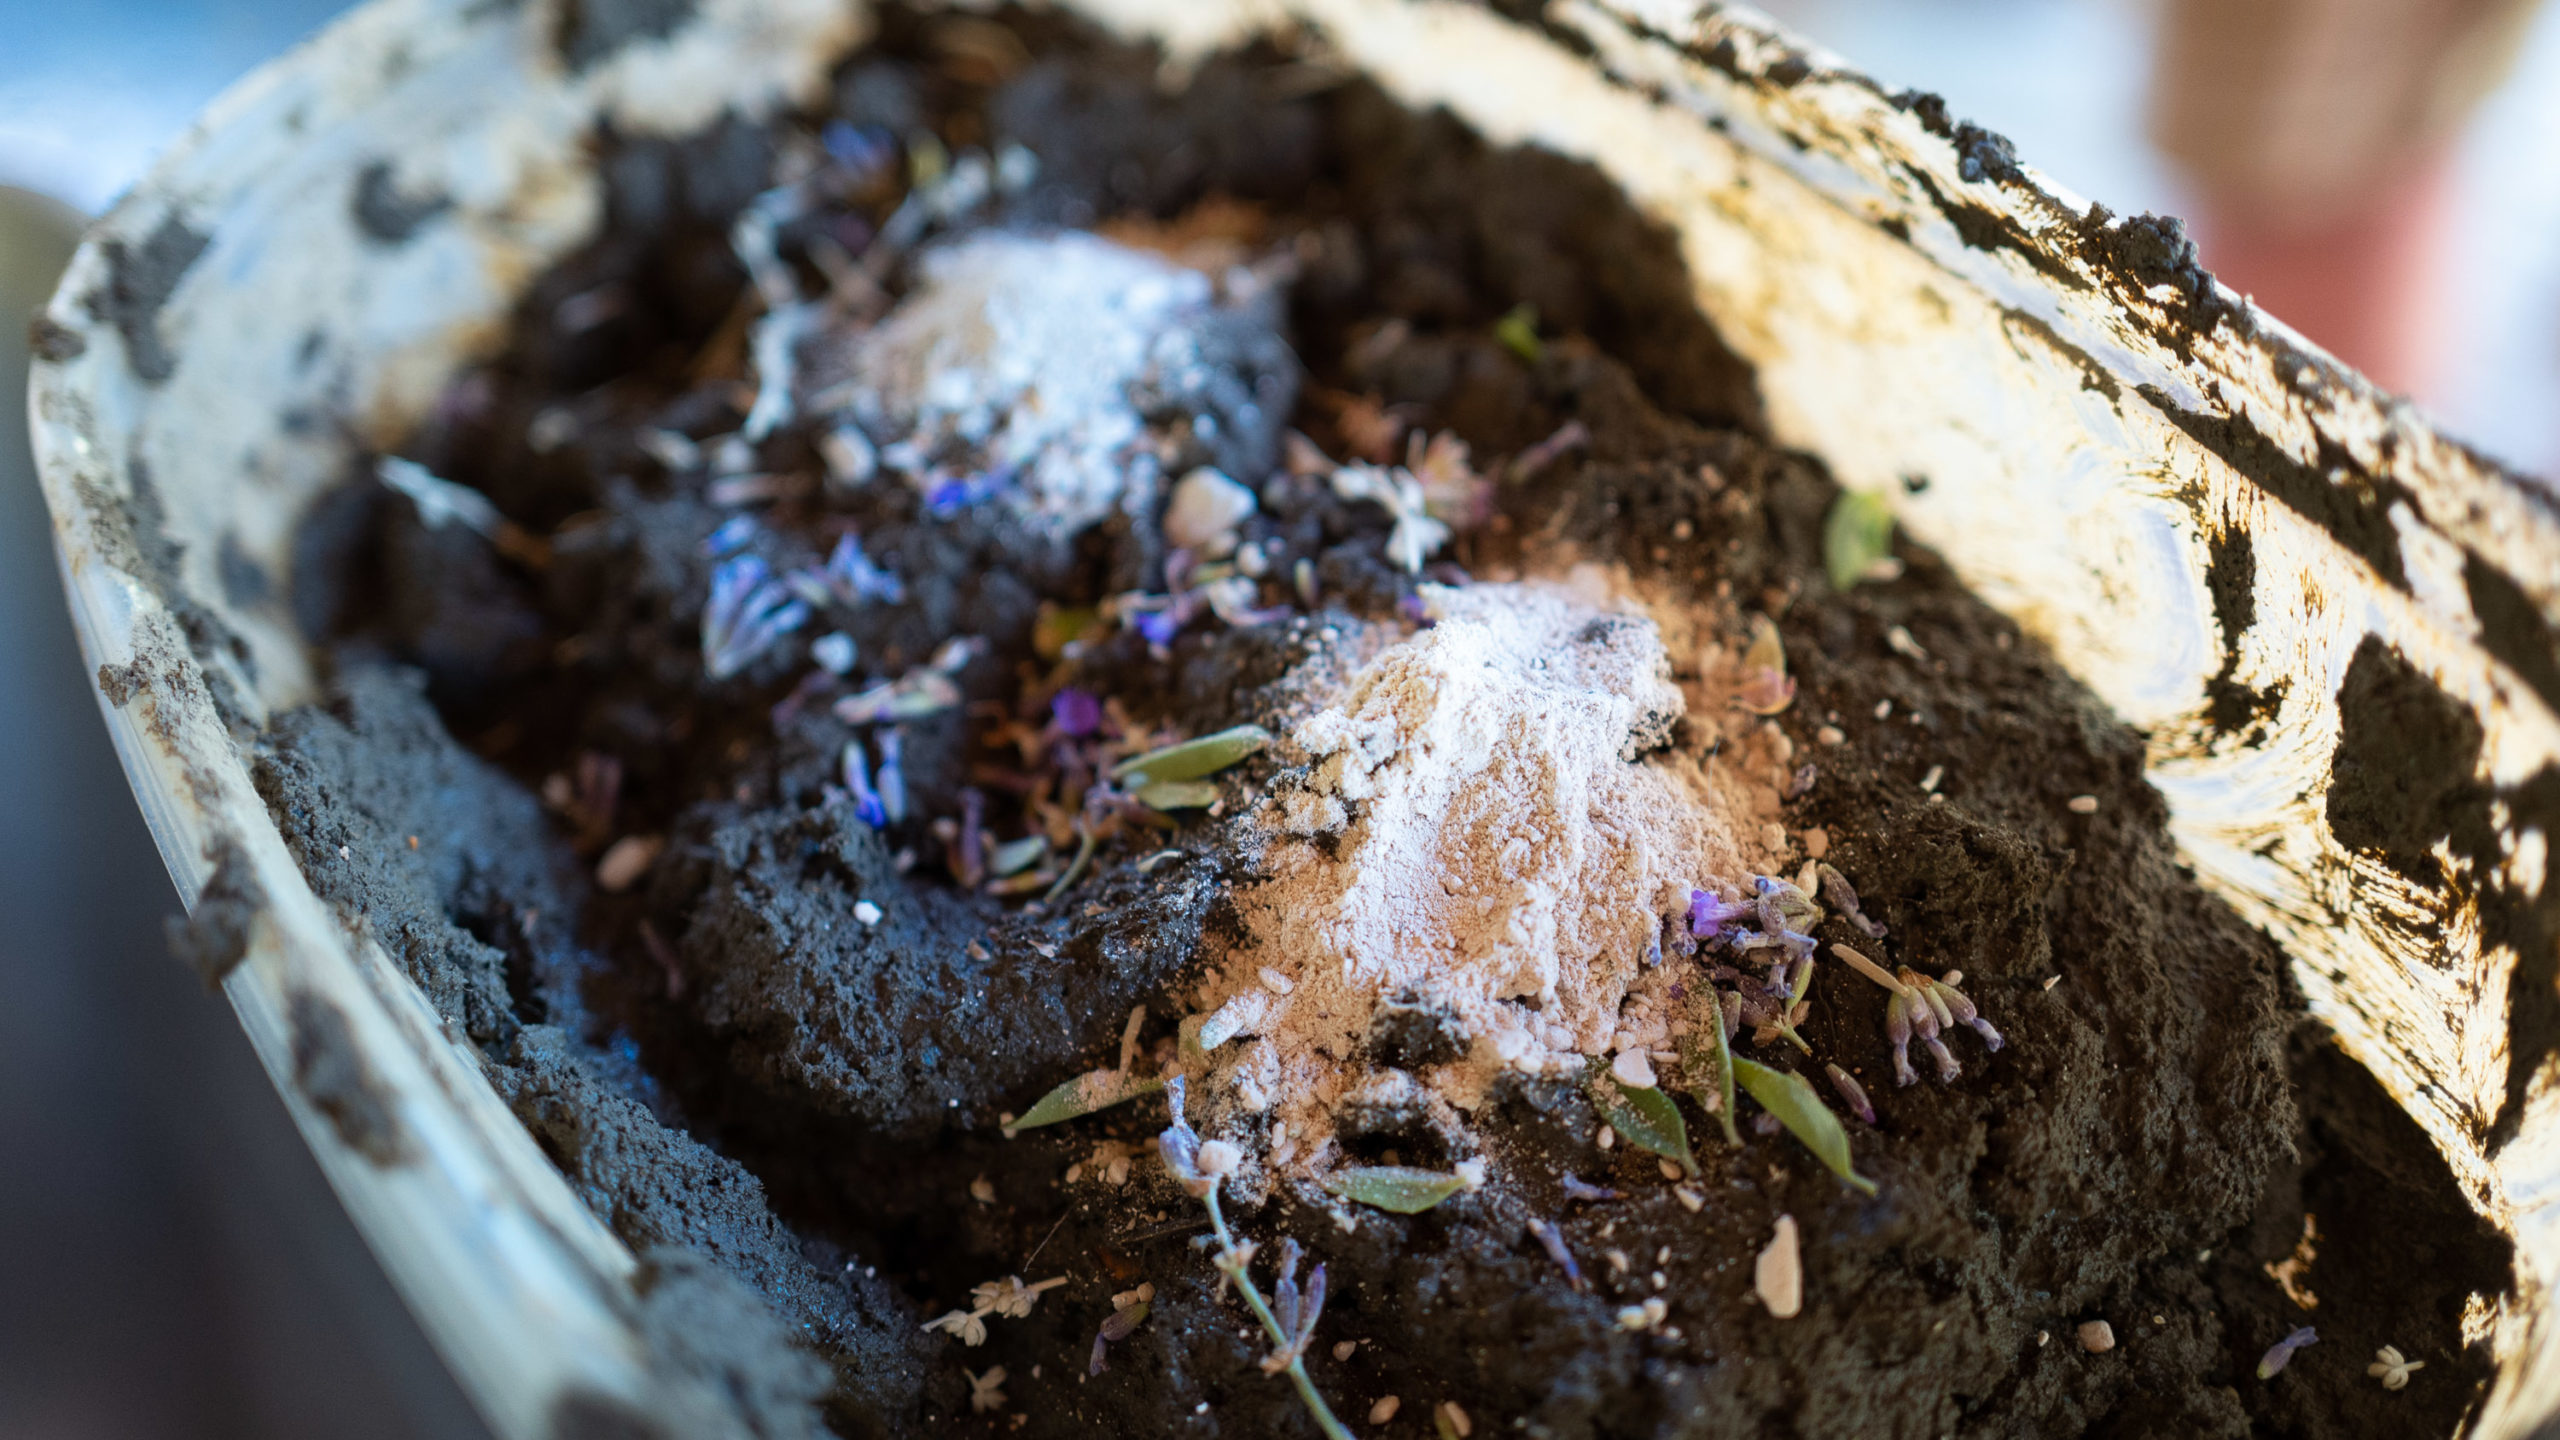 Ashes on the clay mixture